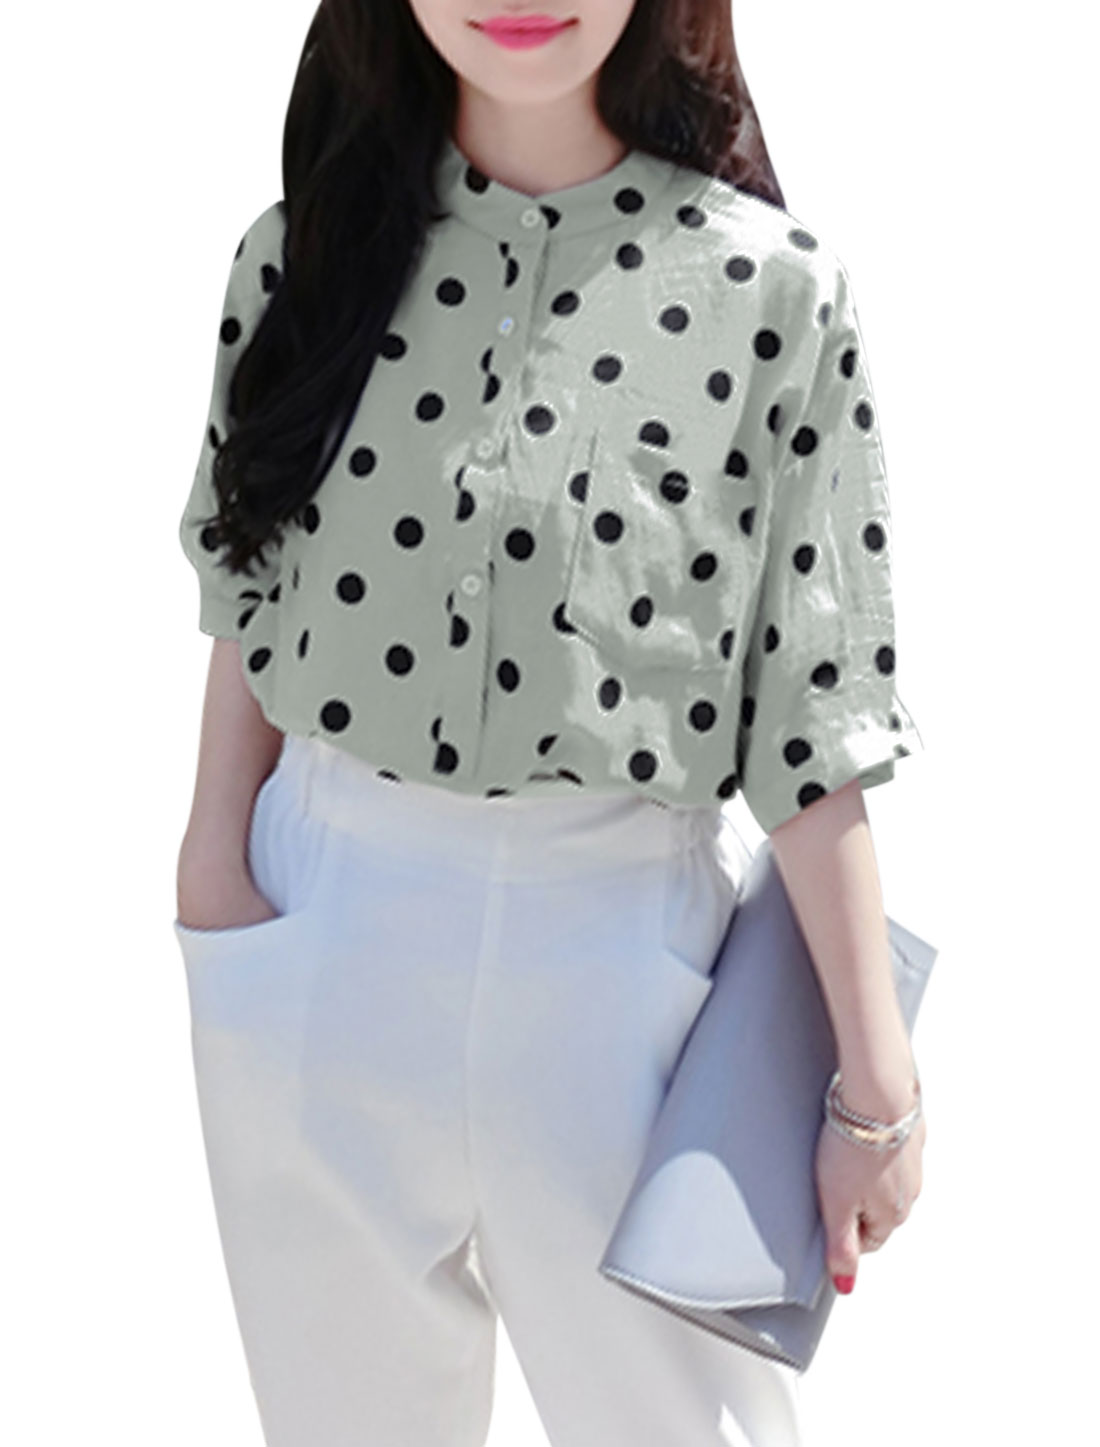 Lady Polka Dots Prints Stand Collar 3/4 Sleeves Top Light Gray XS